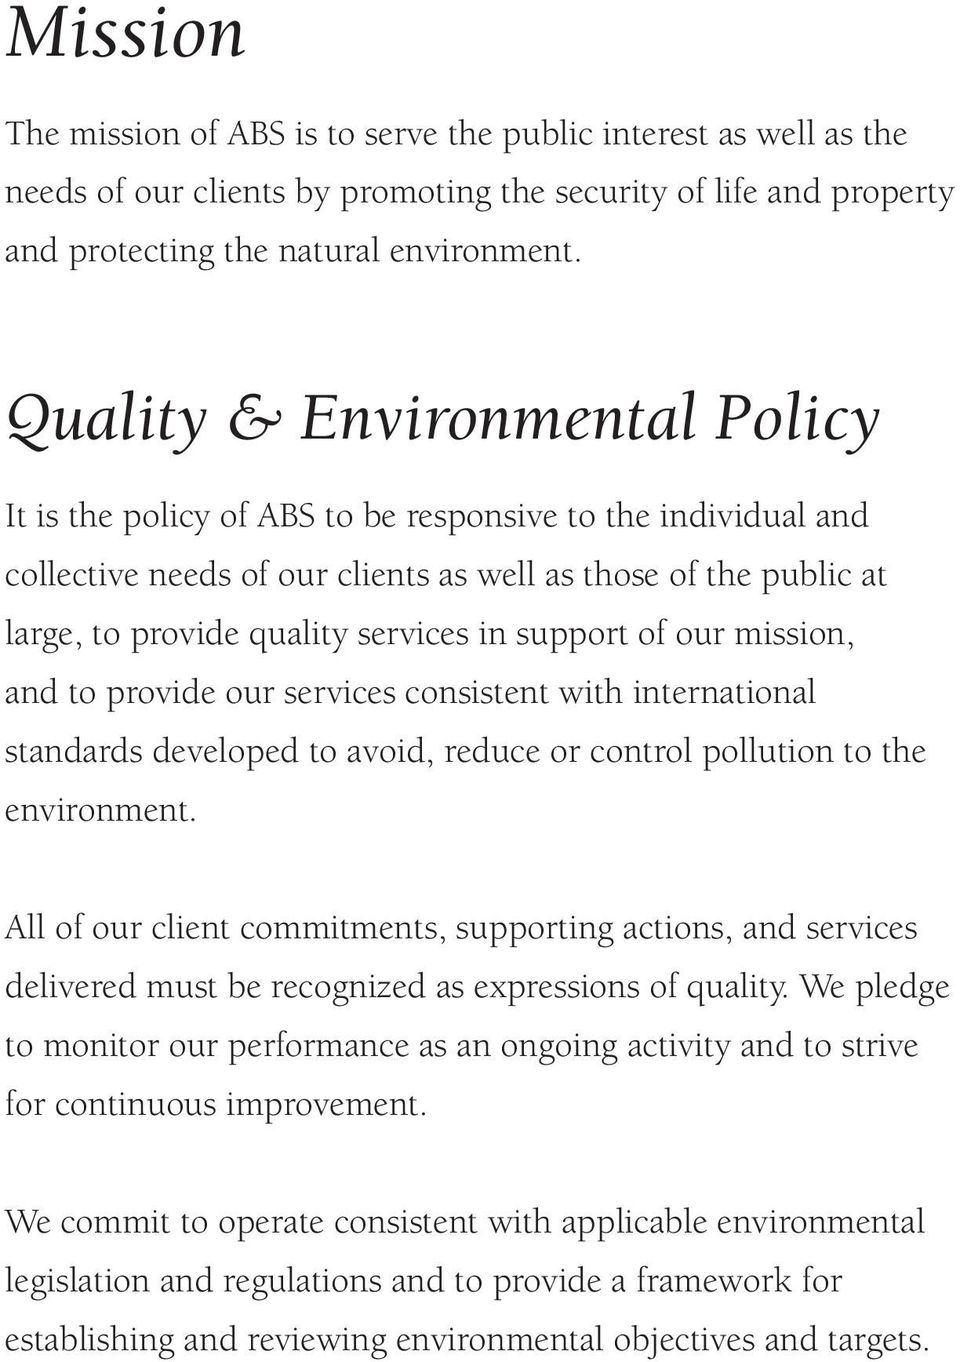 support of our mission, and to provide our services consistent with international standards developed to avoid, reduce or control pollution to the environment.